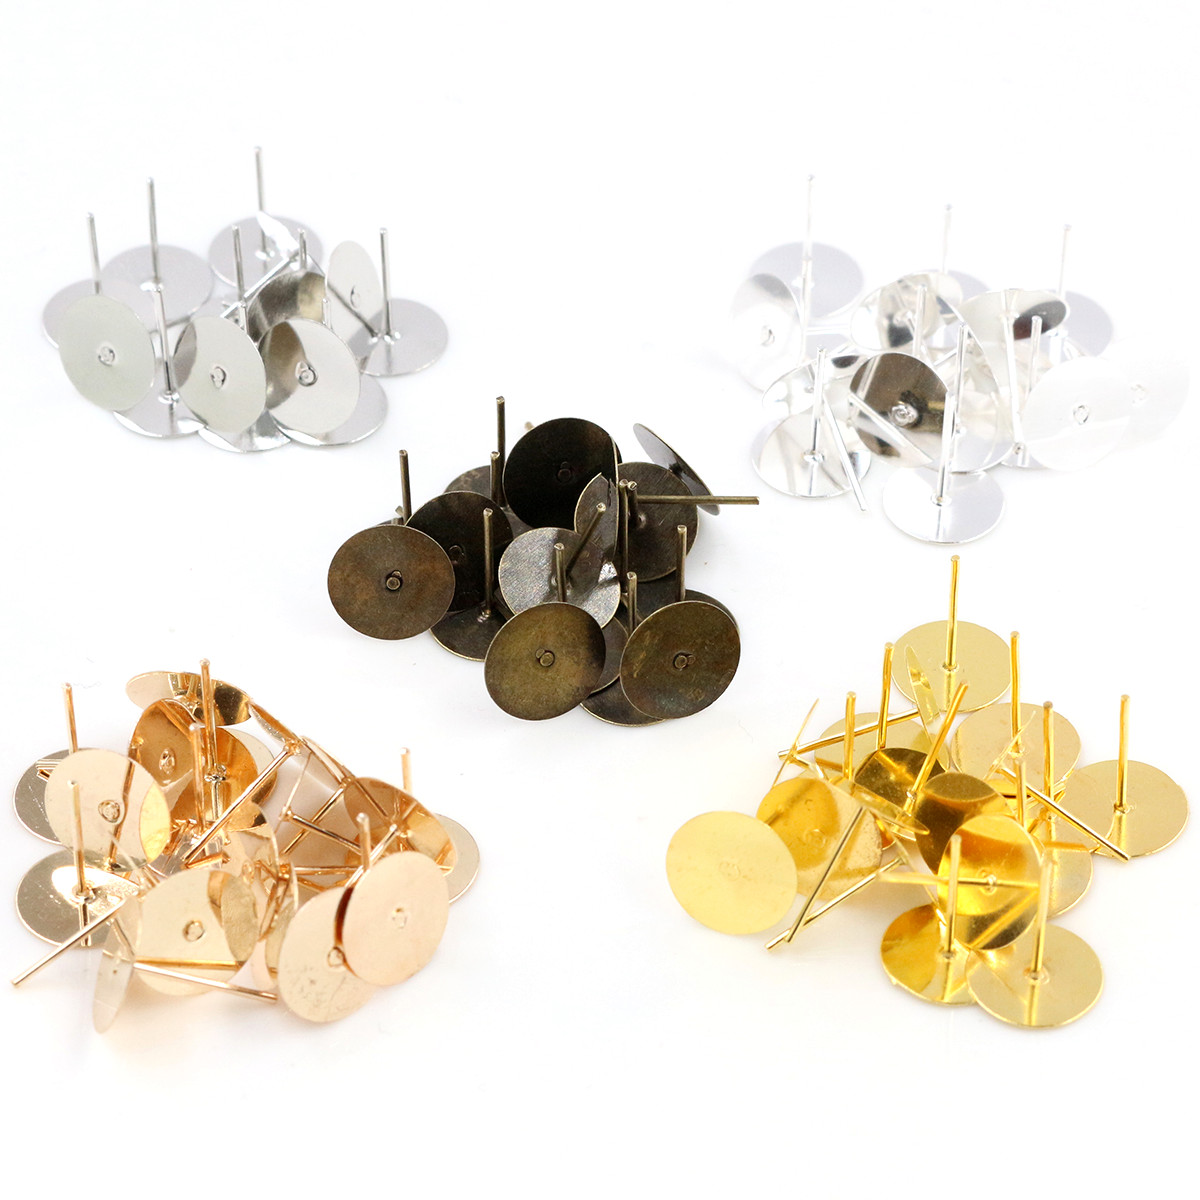 4mm 6mm 8mm 10mm 100pcs/Lot Fashion 5 Colors Plated Stainless Iron Earring Studs Blank Base Earring Post (with Stopper) Base